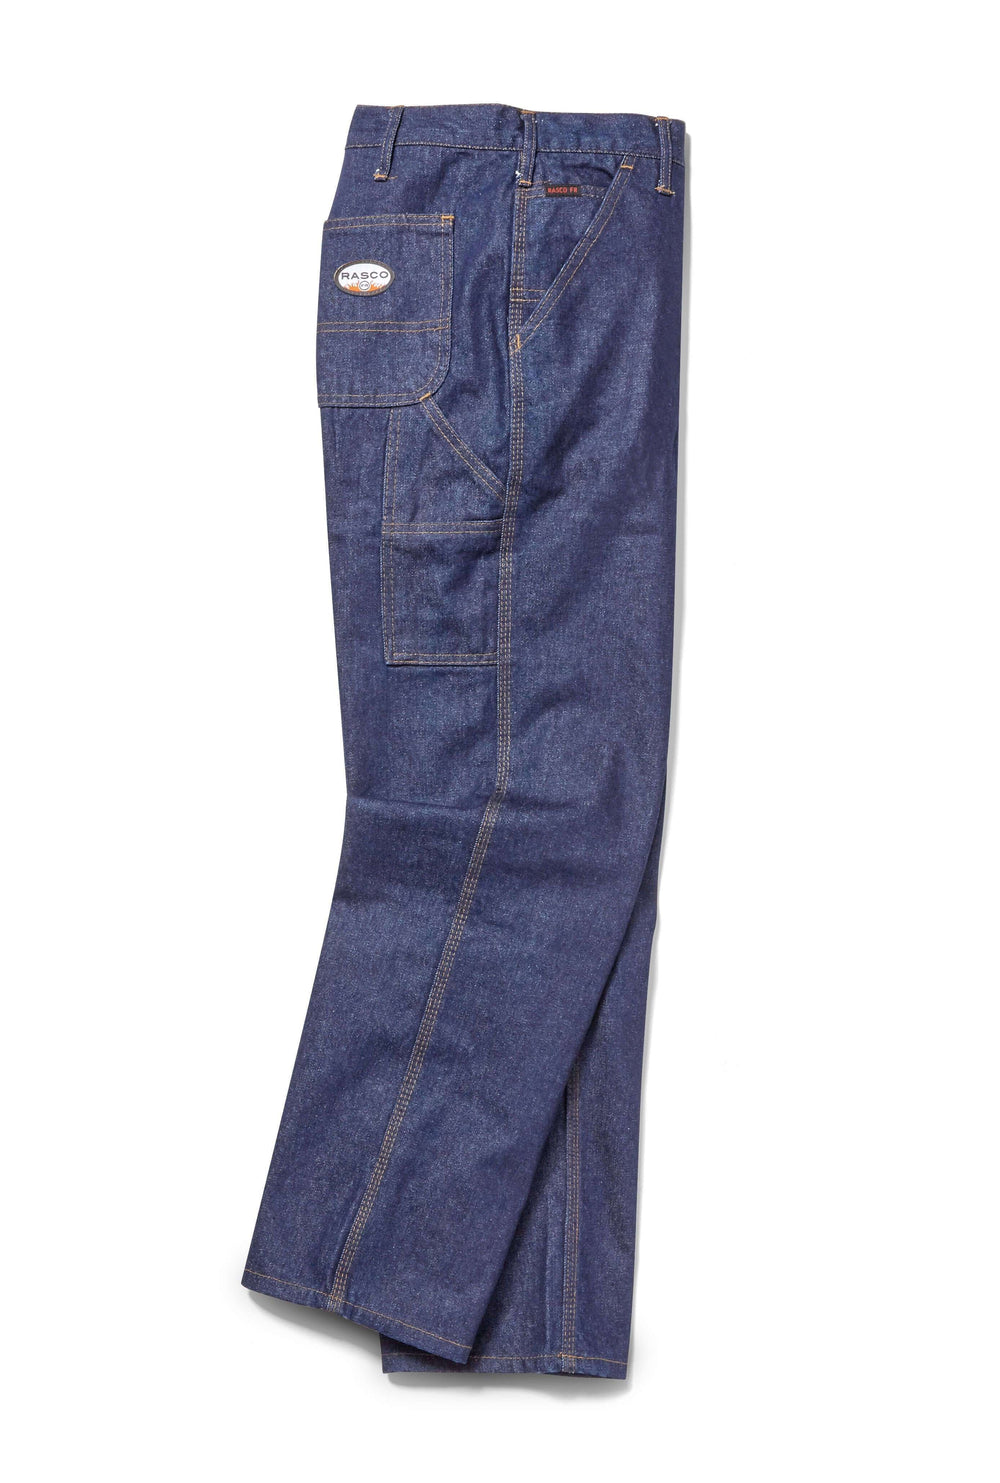 Rasco FR Blue Denim Carpenter Pants FR4507DN